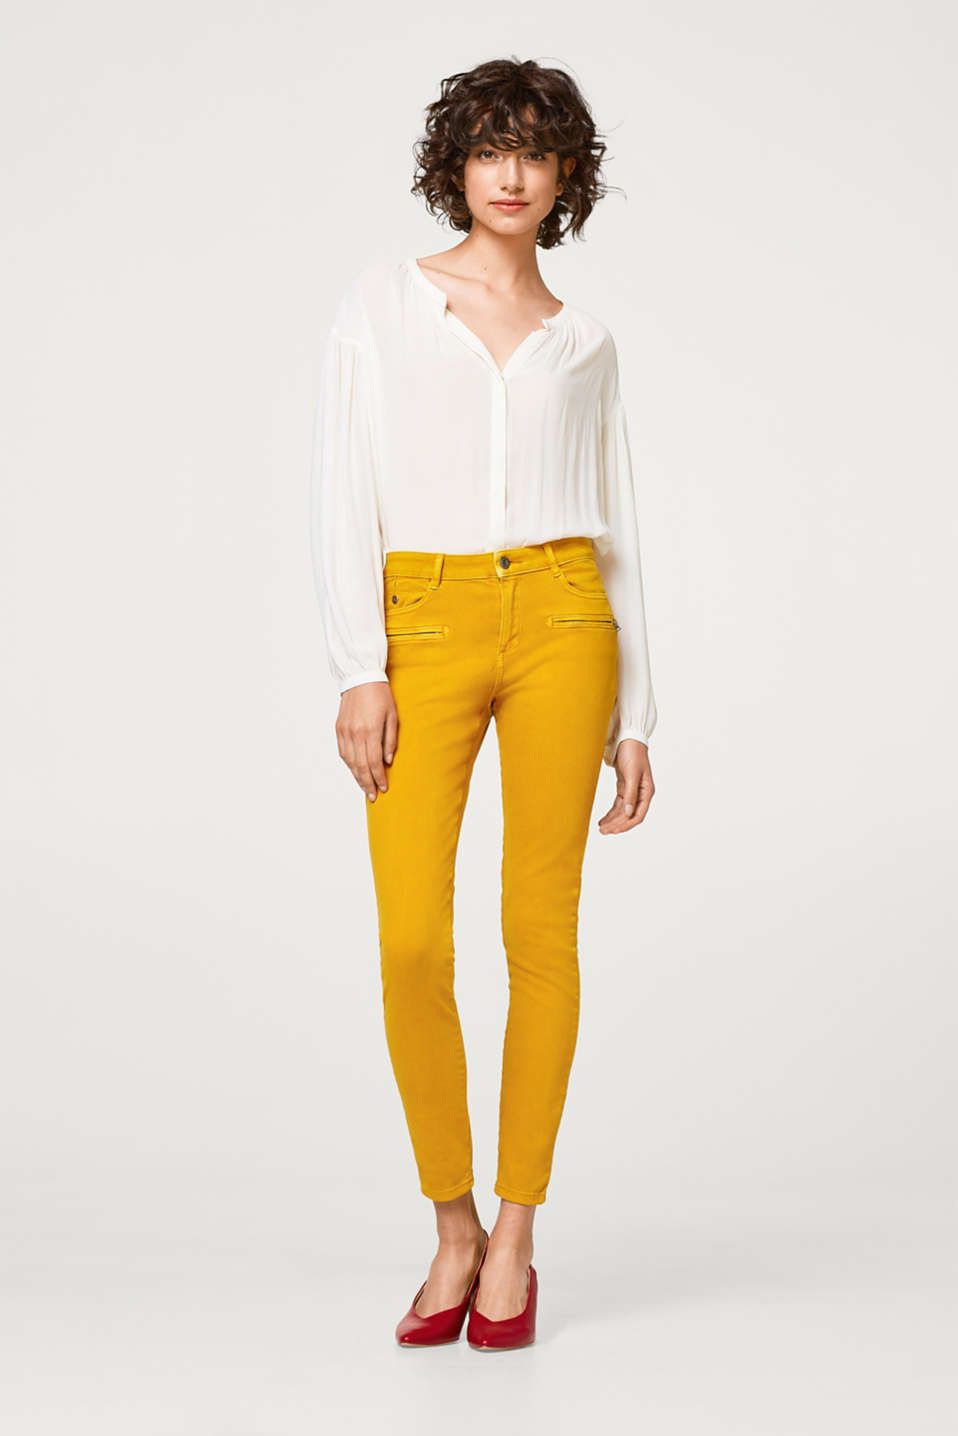 Esprit - Stretch-Pants mit Zier-Zippern